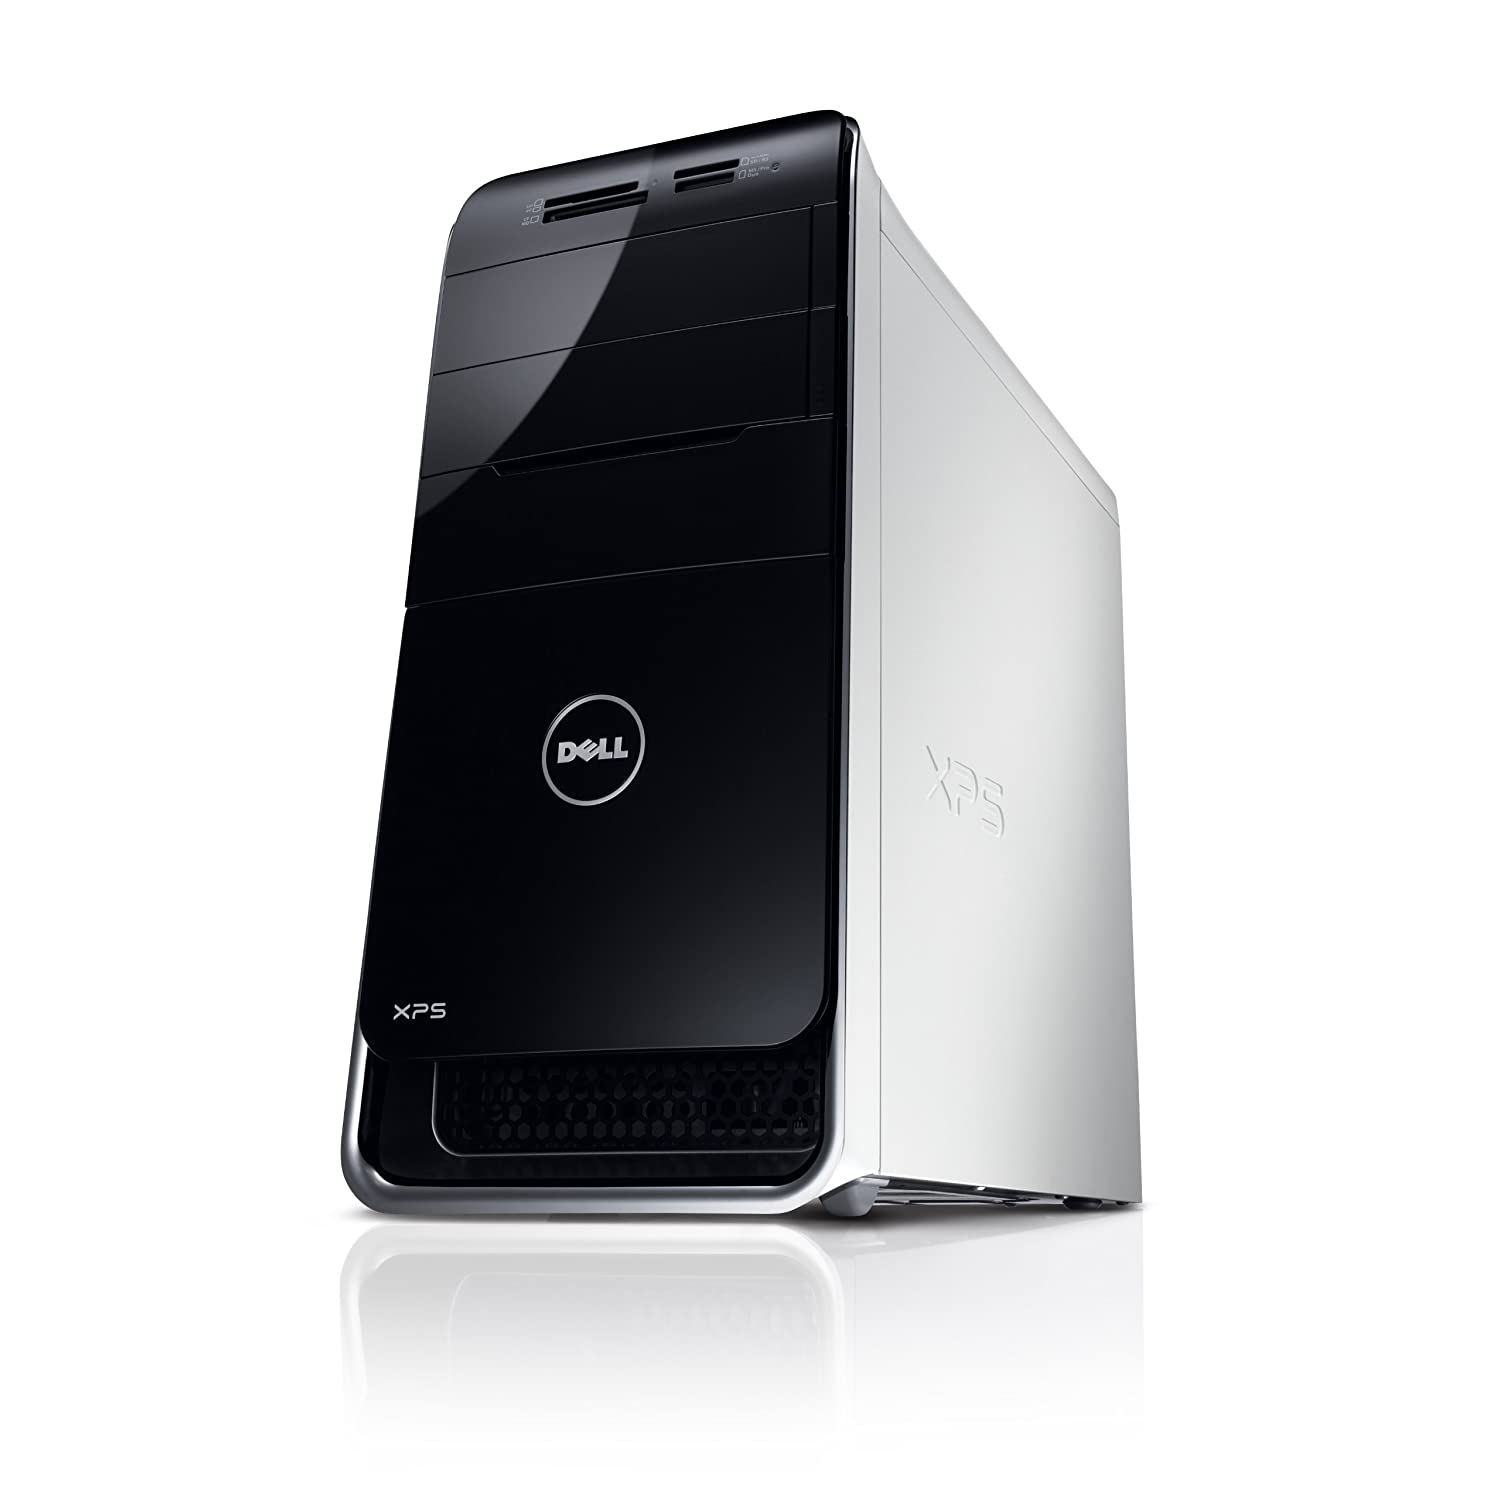 new dell xps 8300 desktop intel i7 2600 8gb 1tb blueray ebay. Black Bedroom Furniture Sets. Home Design Ideas